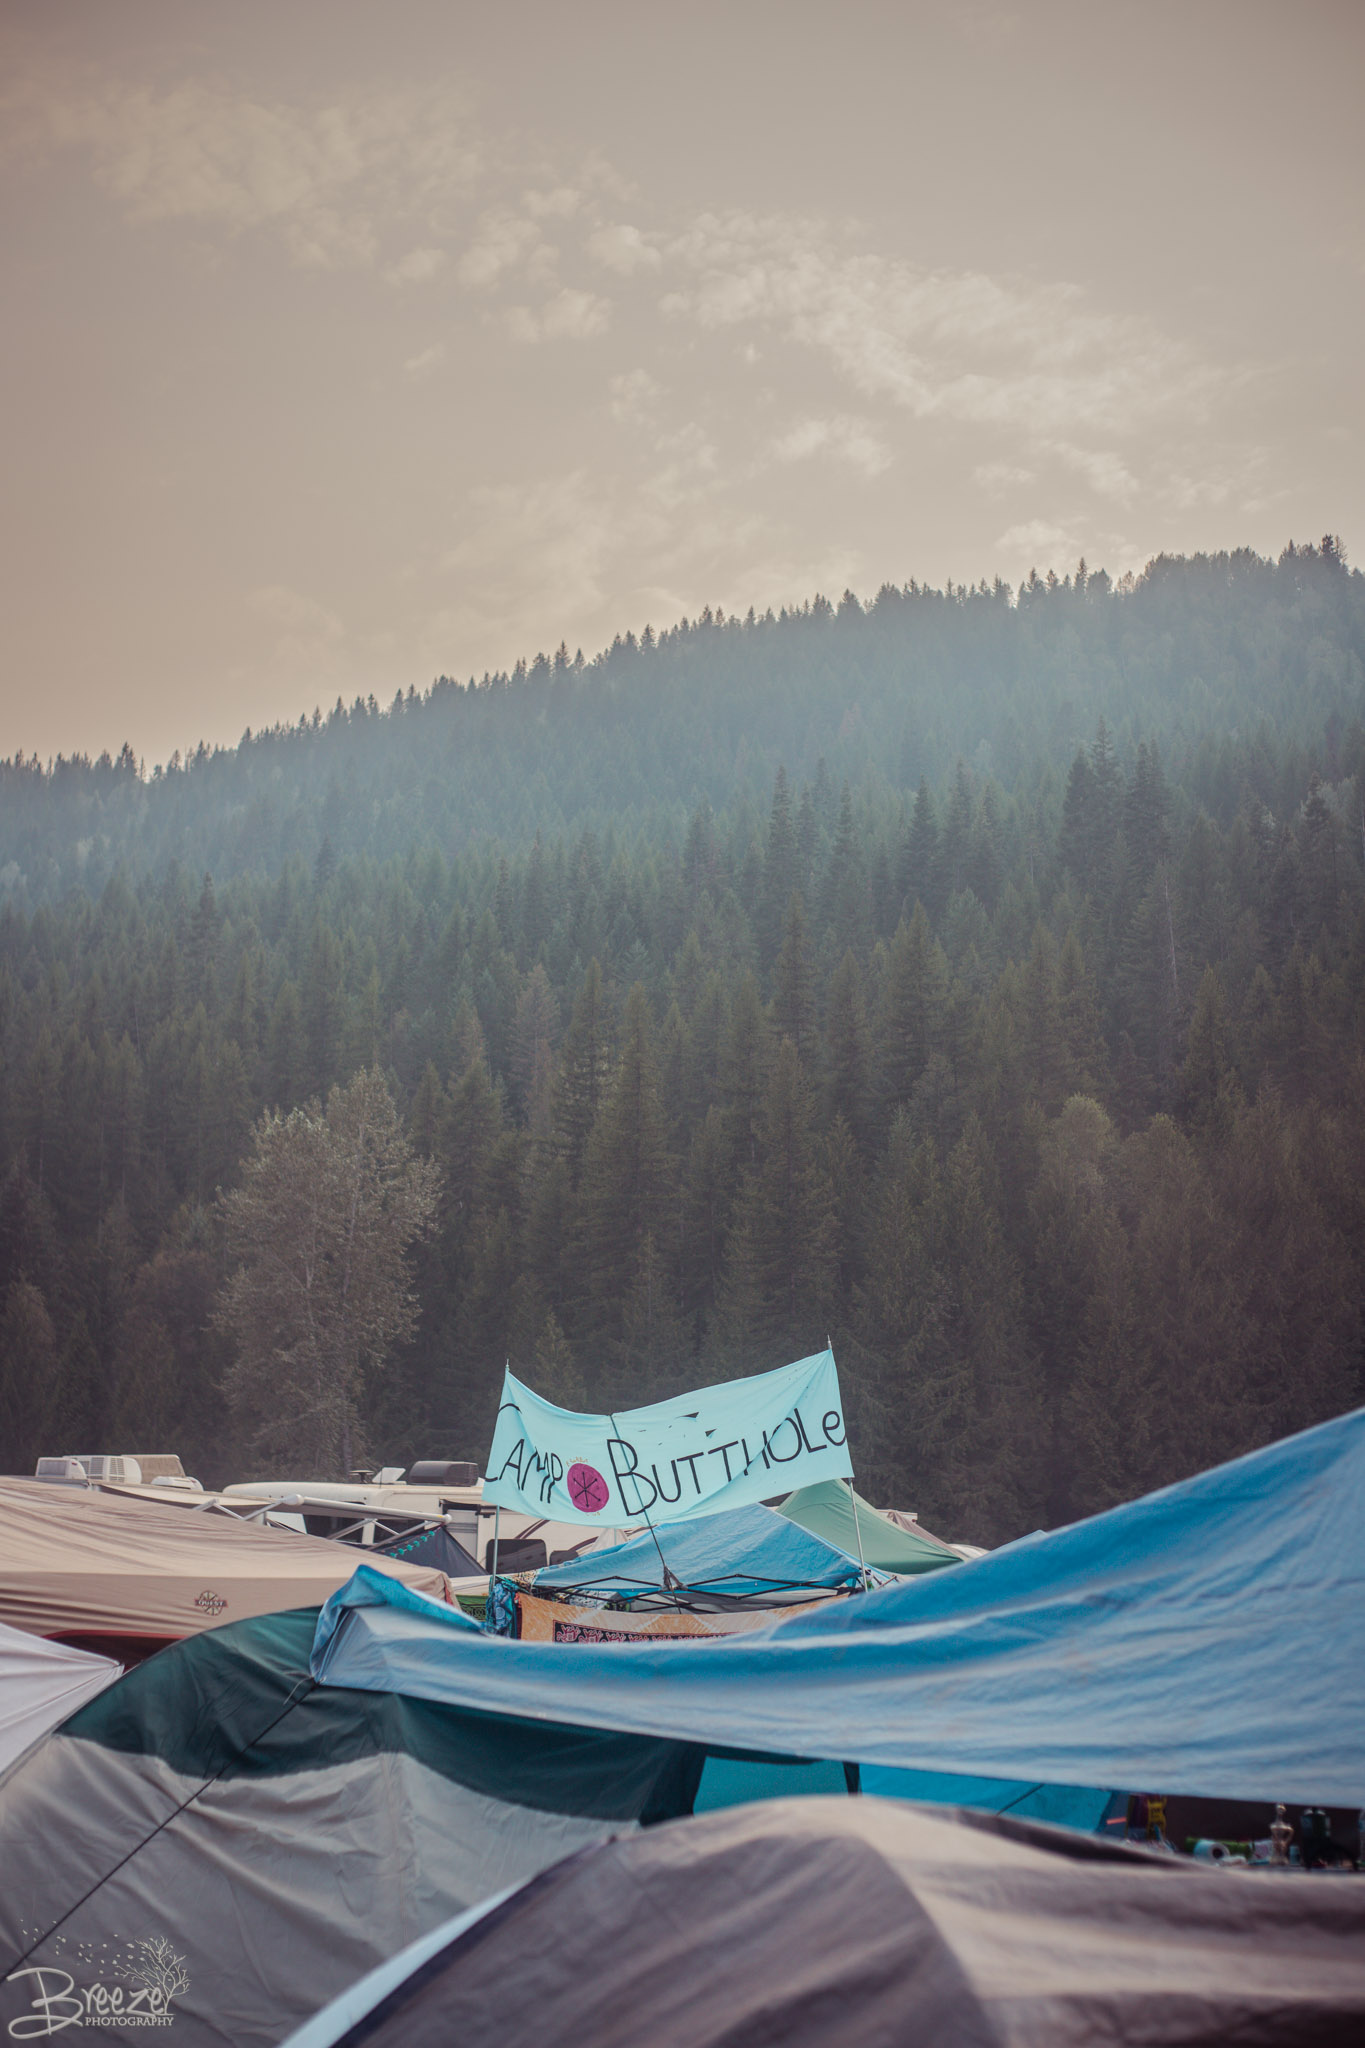 Brie'Ana Breeze Photography & Media - Shambhala 2018-0629.jpg